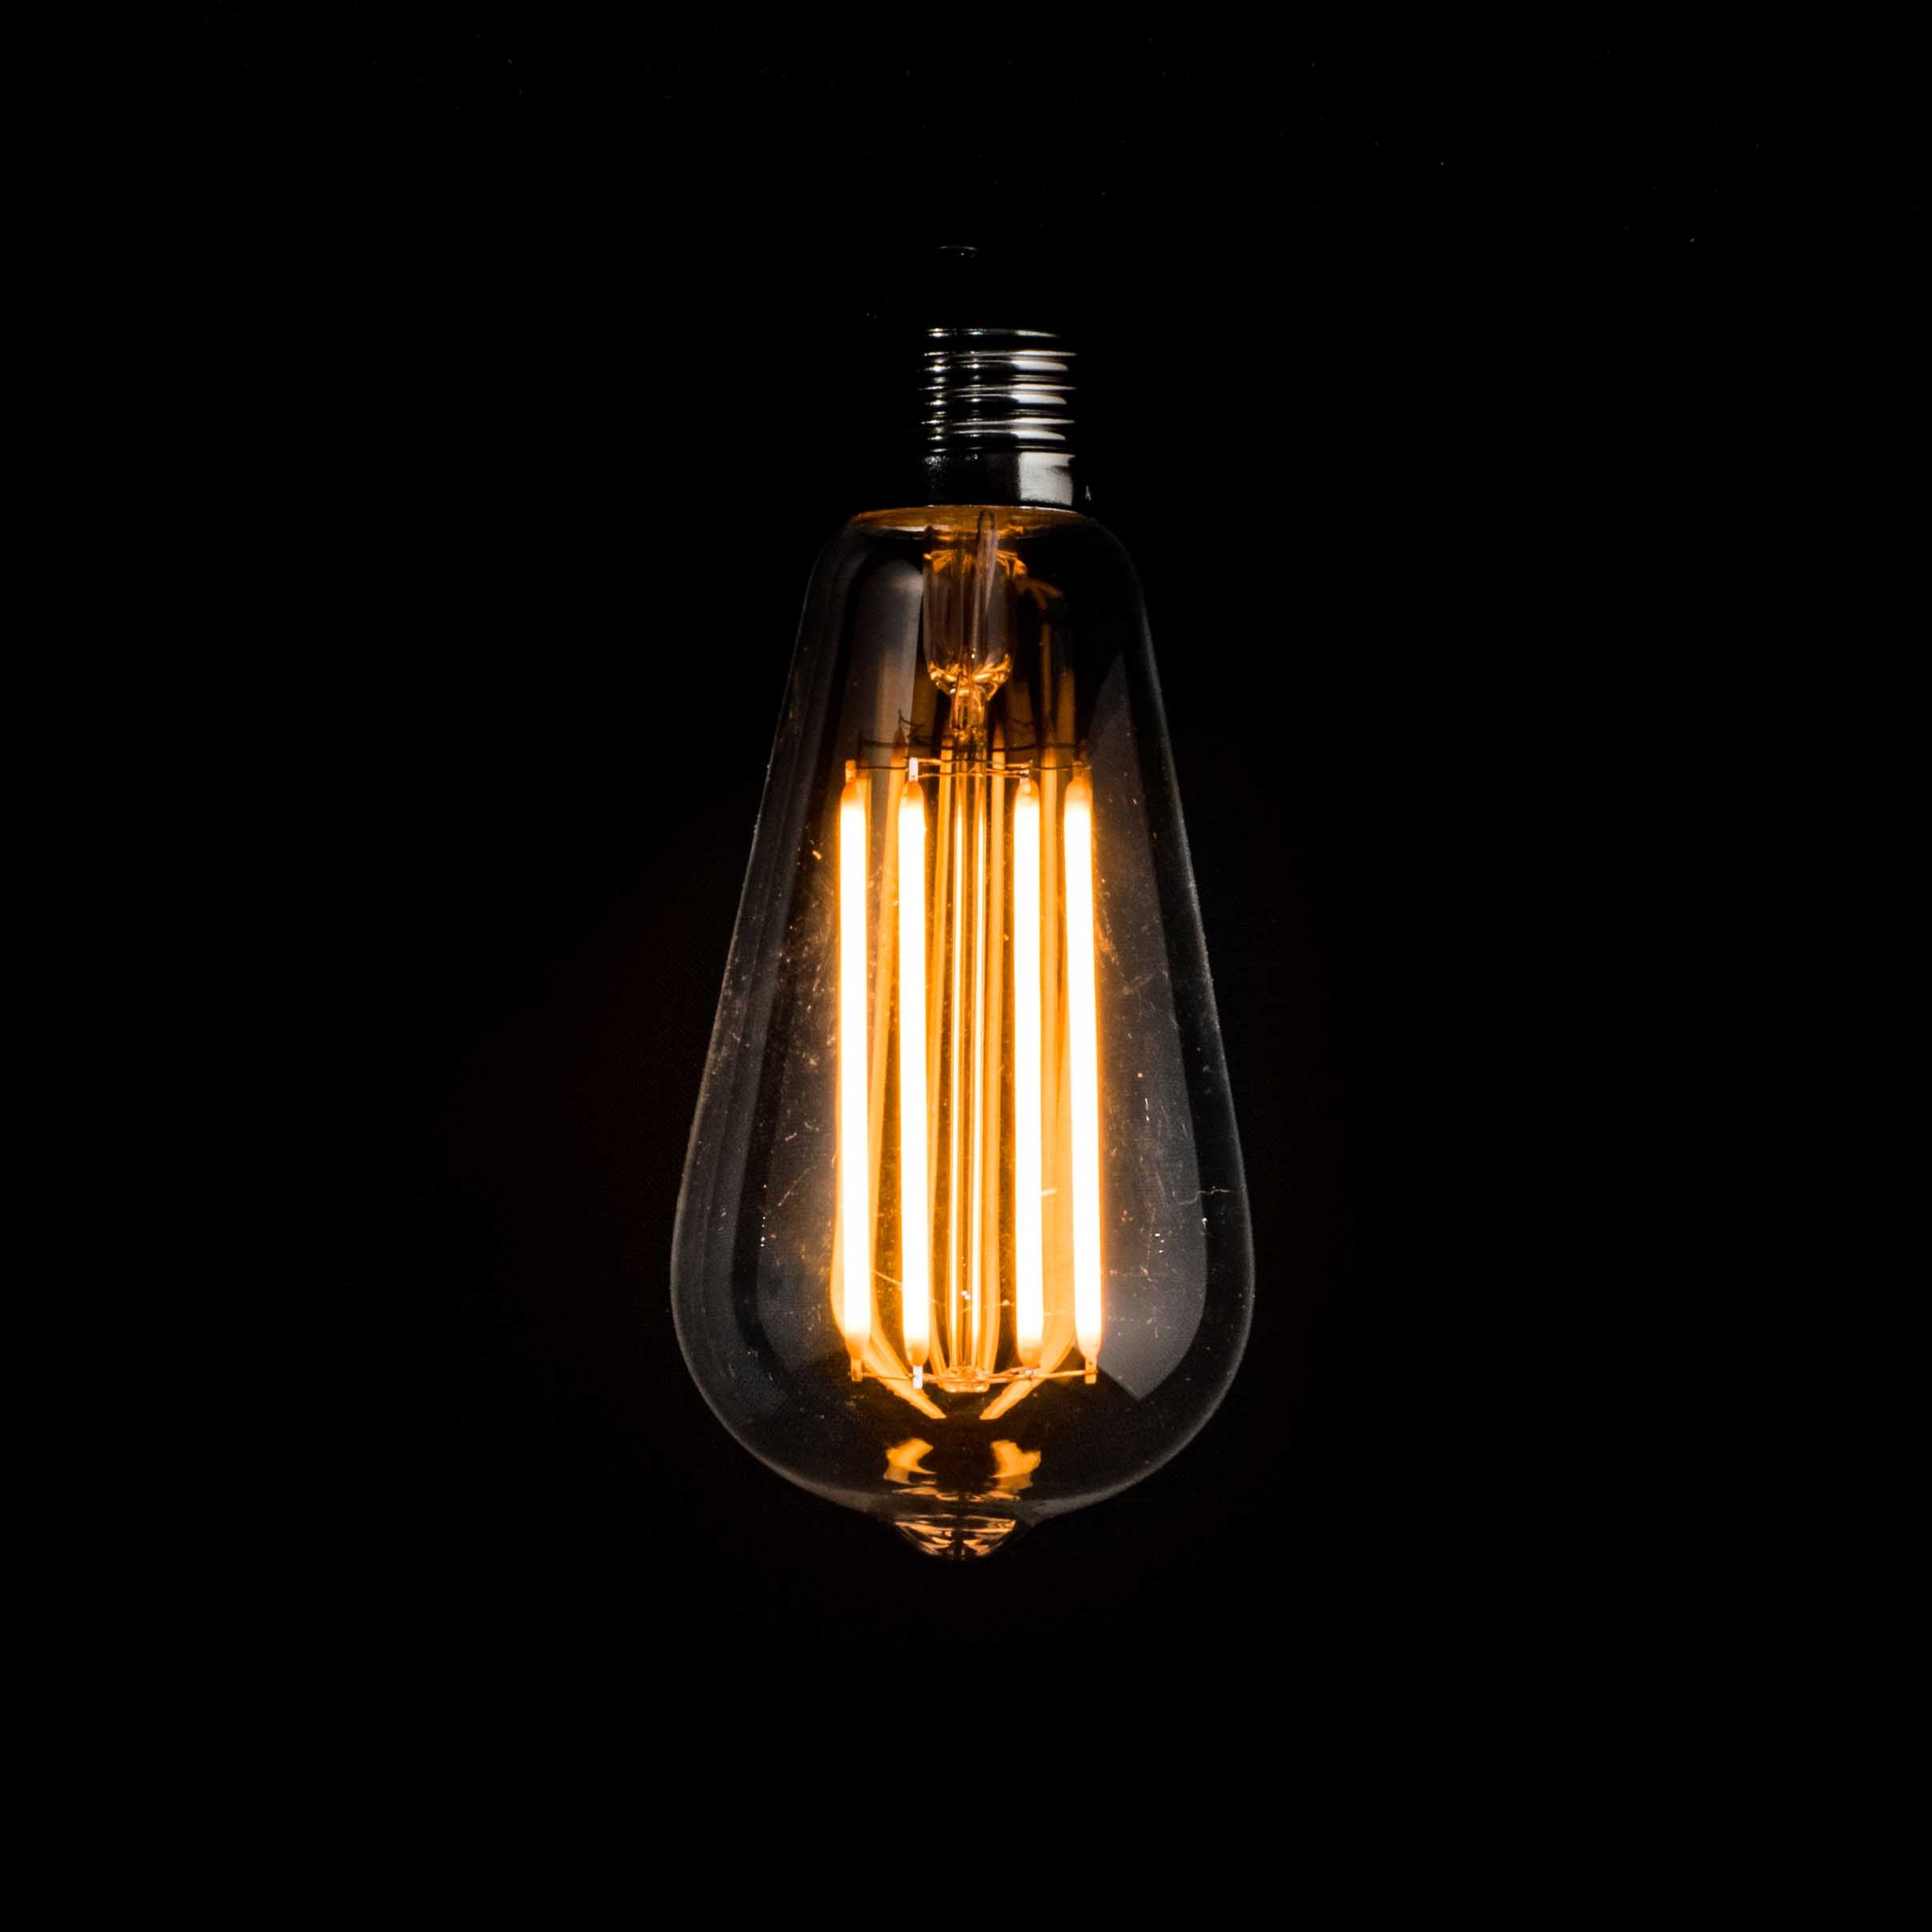 ST64 Long Filament by Vintage LED